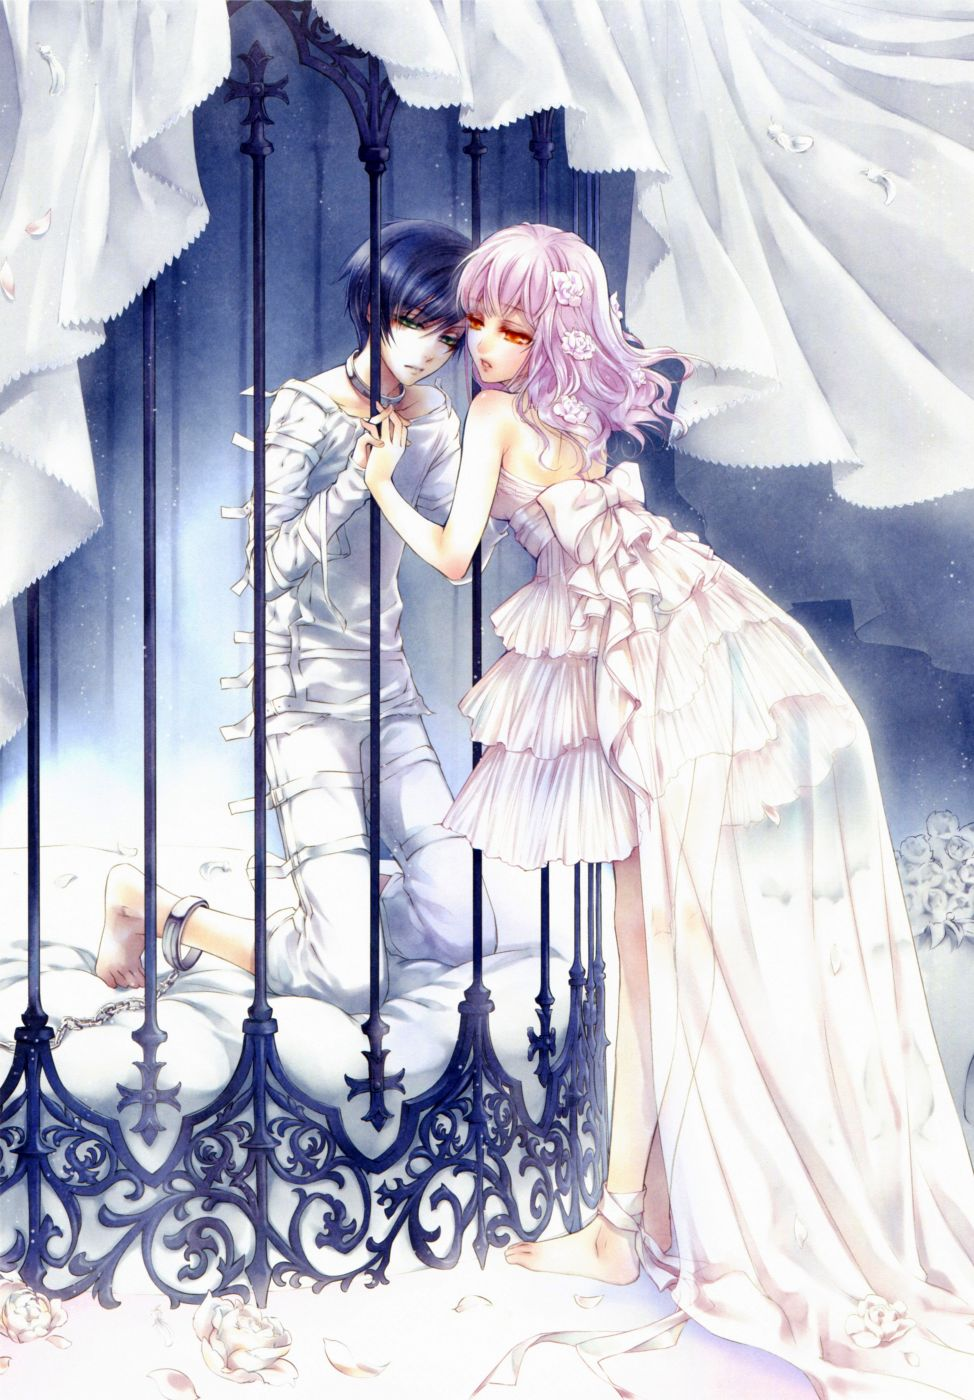 Anime couple love rose flower dress white cage prisoner